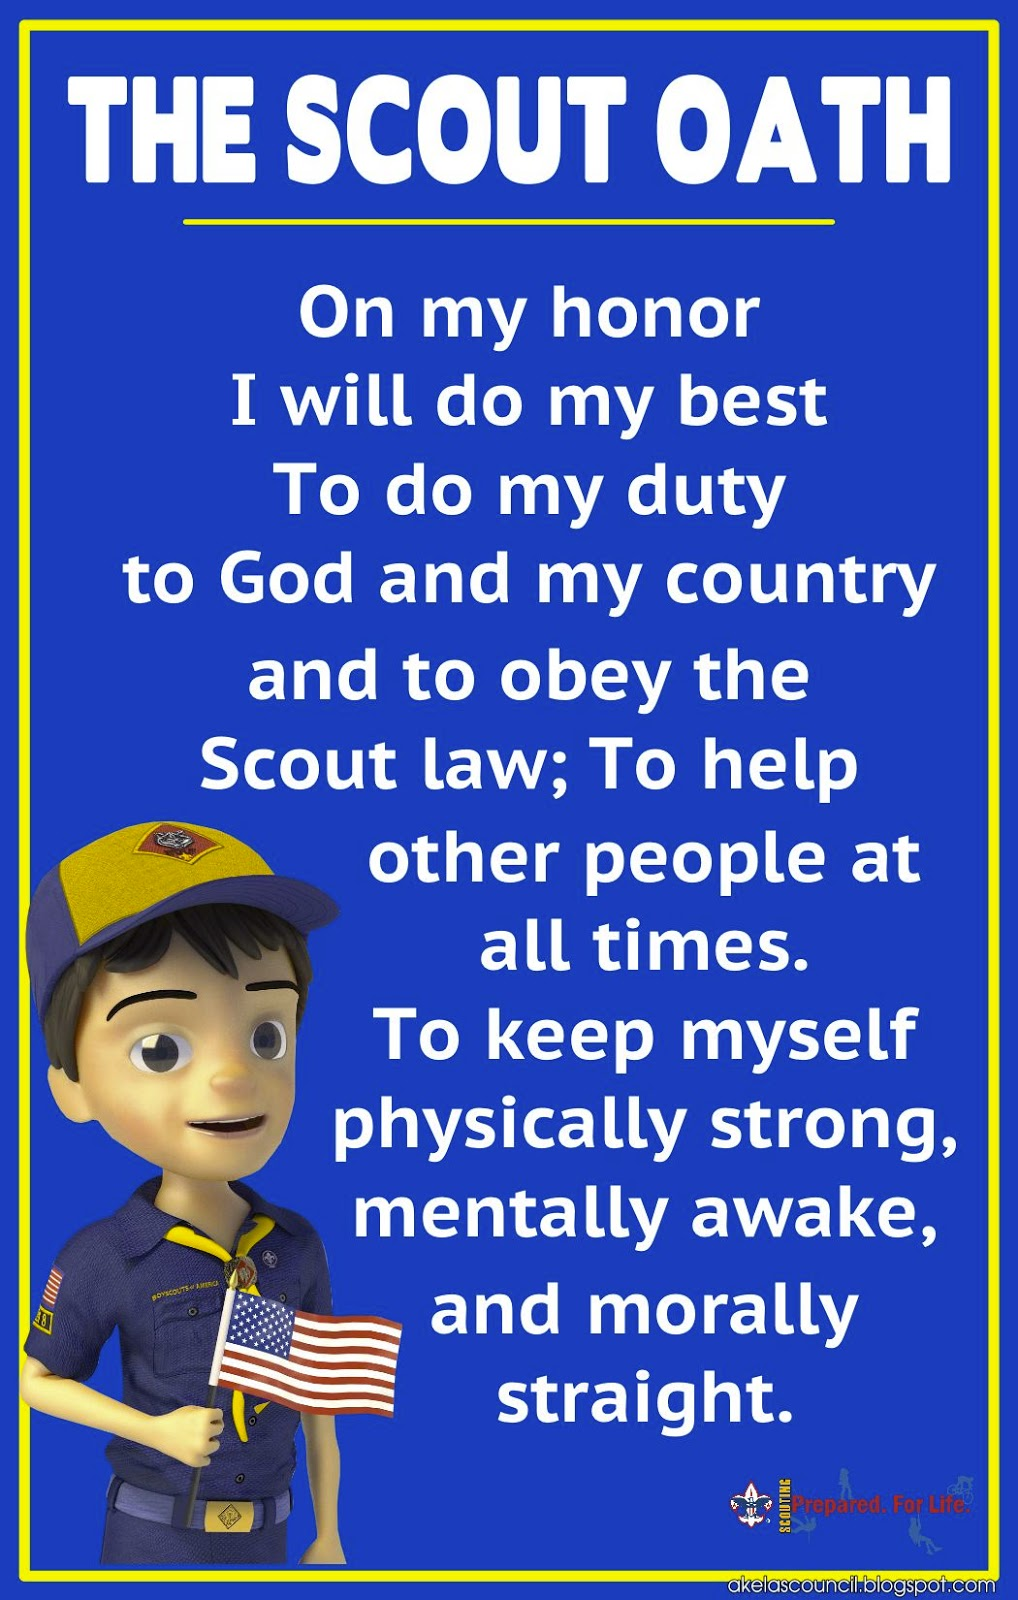 image about Cub Scout Oath and Law Printable referred to as Akelas Council Cub Scout Chief Working out: Cub Scout Legislation